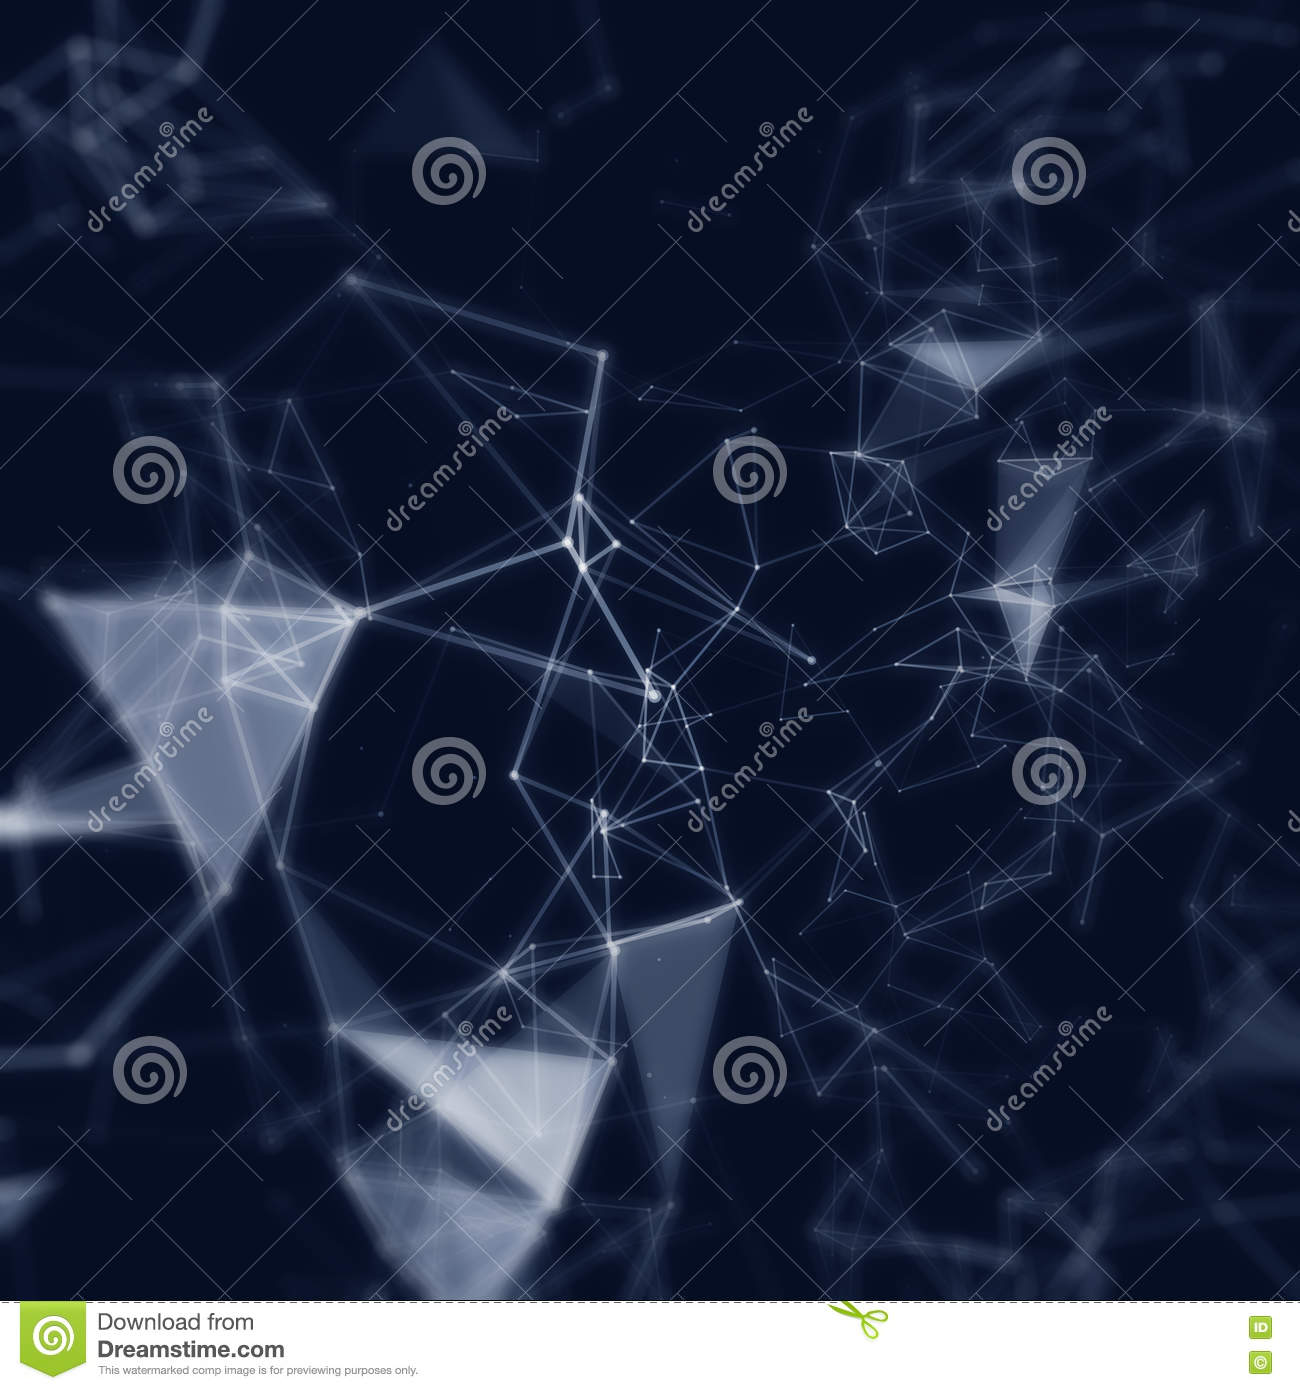 abstract network background - photo #31